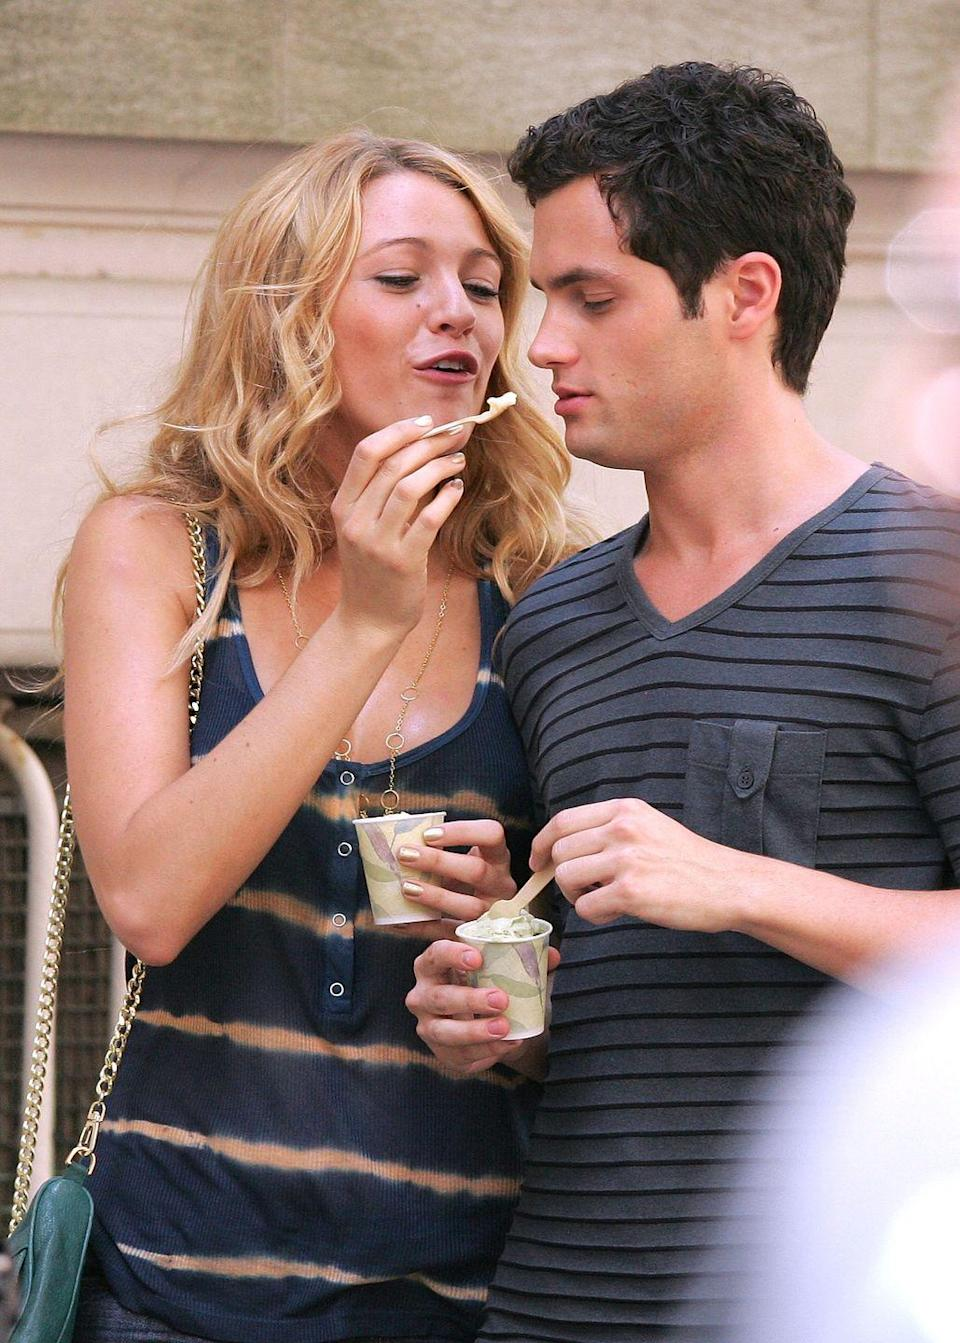 "<p>Taking a cue from their on-screen characters, the <em>Gossip Girl </em>co-stars' relationship heated up in real life, with Lively and Badgley dating for a solid <a href=""http://www.people.com/people/article/0,,20437192,00.html"" rel=""nofollow noopener"" target=""_blank"" data-ylk=""slk:three years"" class=""link rapid-noclick-resp"">three years</a> while working together, too. Their romance ended in 2010, which must've made it super strange to not only continue working together but also to <em>marry</em> each other on the show during the final, 2012 season.</p>"